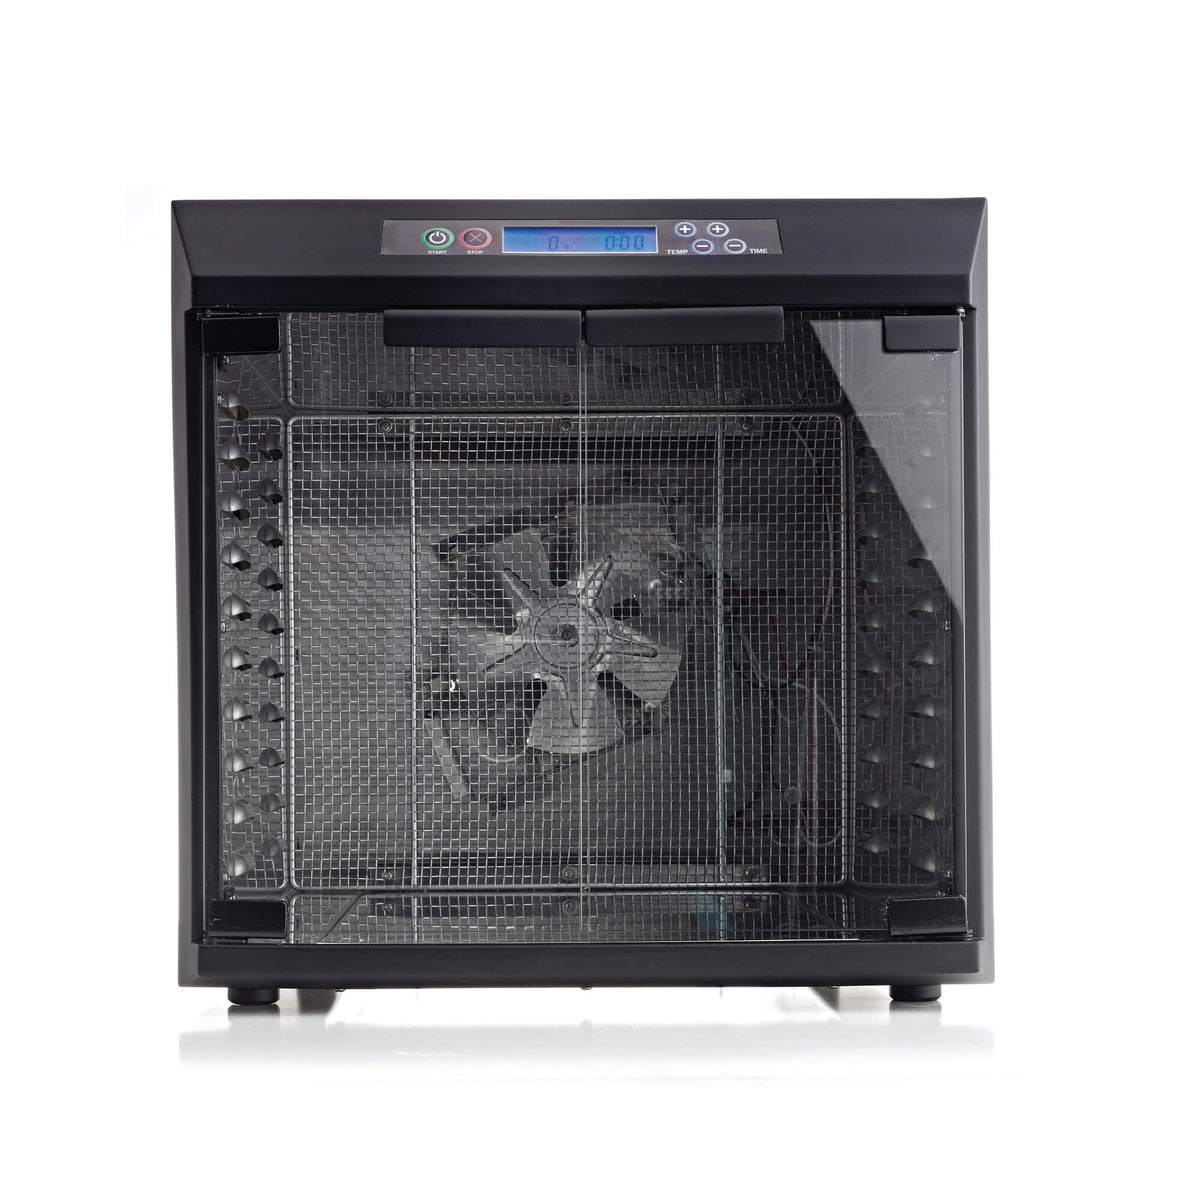 Excalibur EXC10EL 10 tray stainless steel digital dehydrator front view with glass armoured doors closed and no trays loaded.